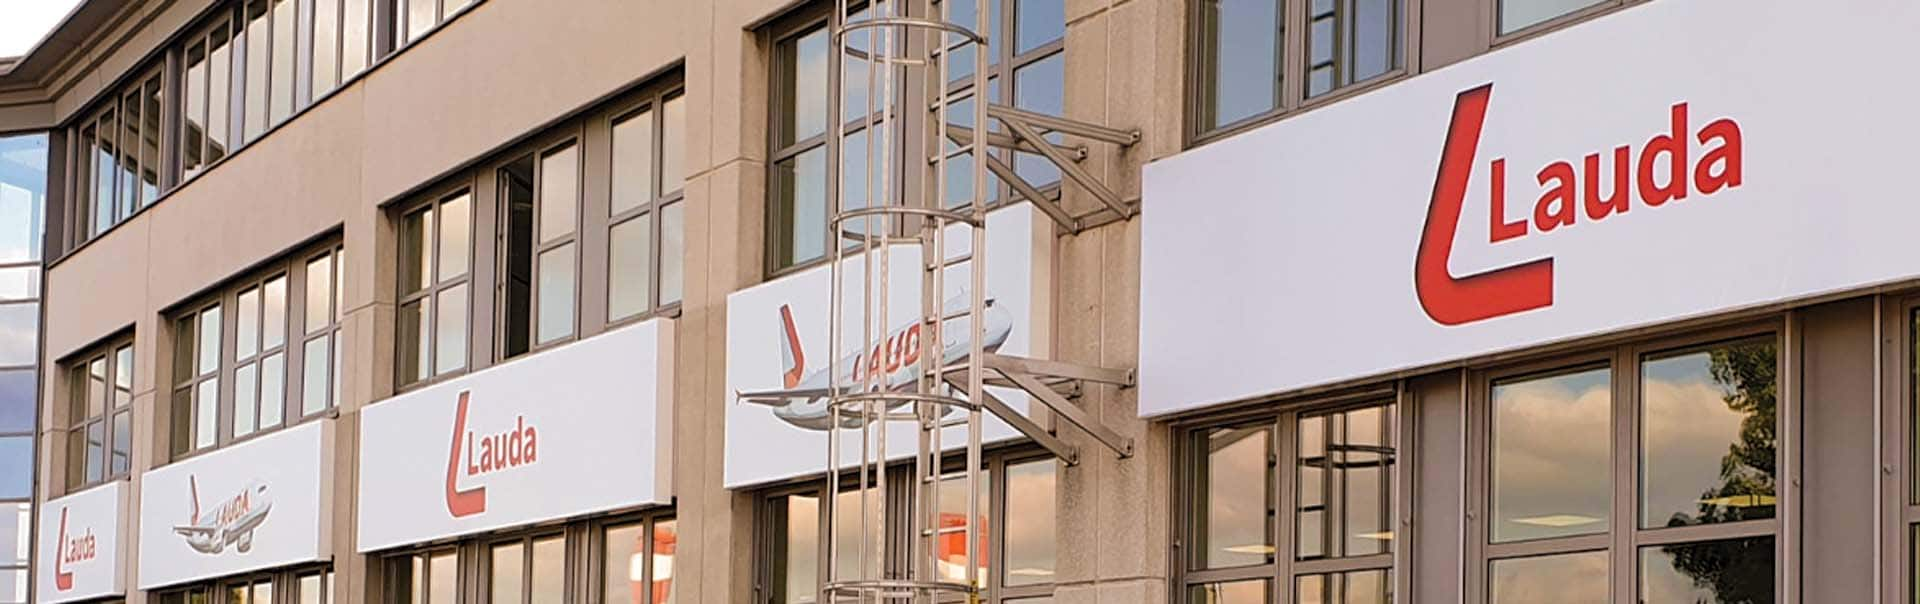 Fret-cut fascia signage rebrand at Laudamotion HQ, Vienna